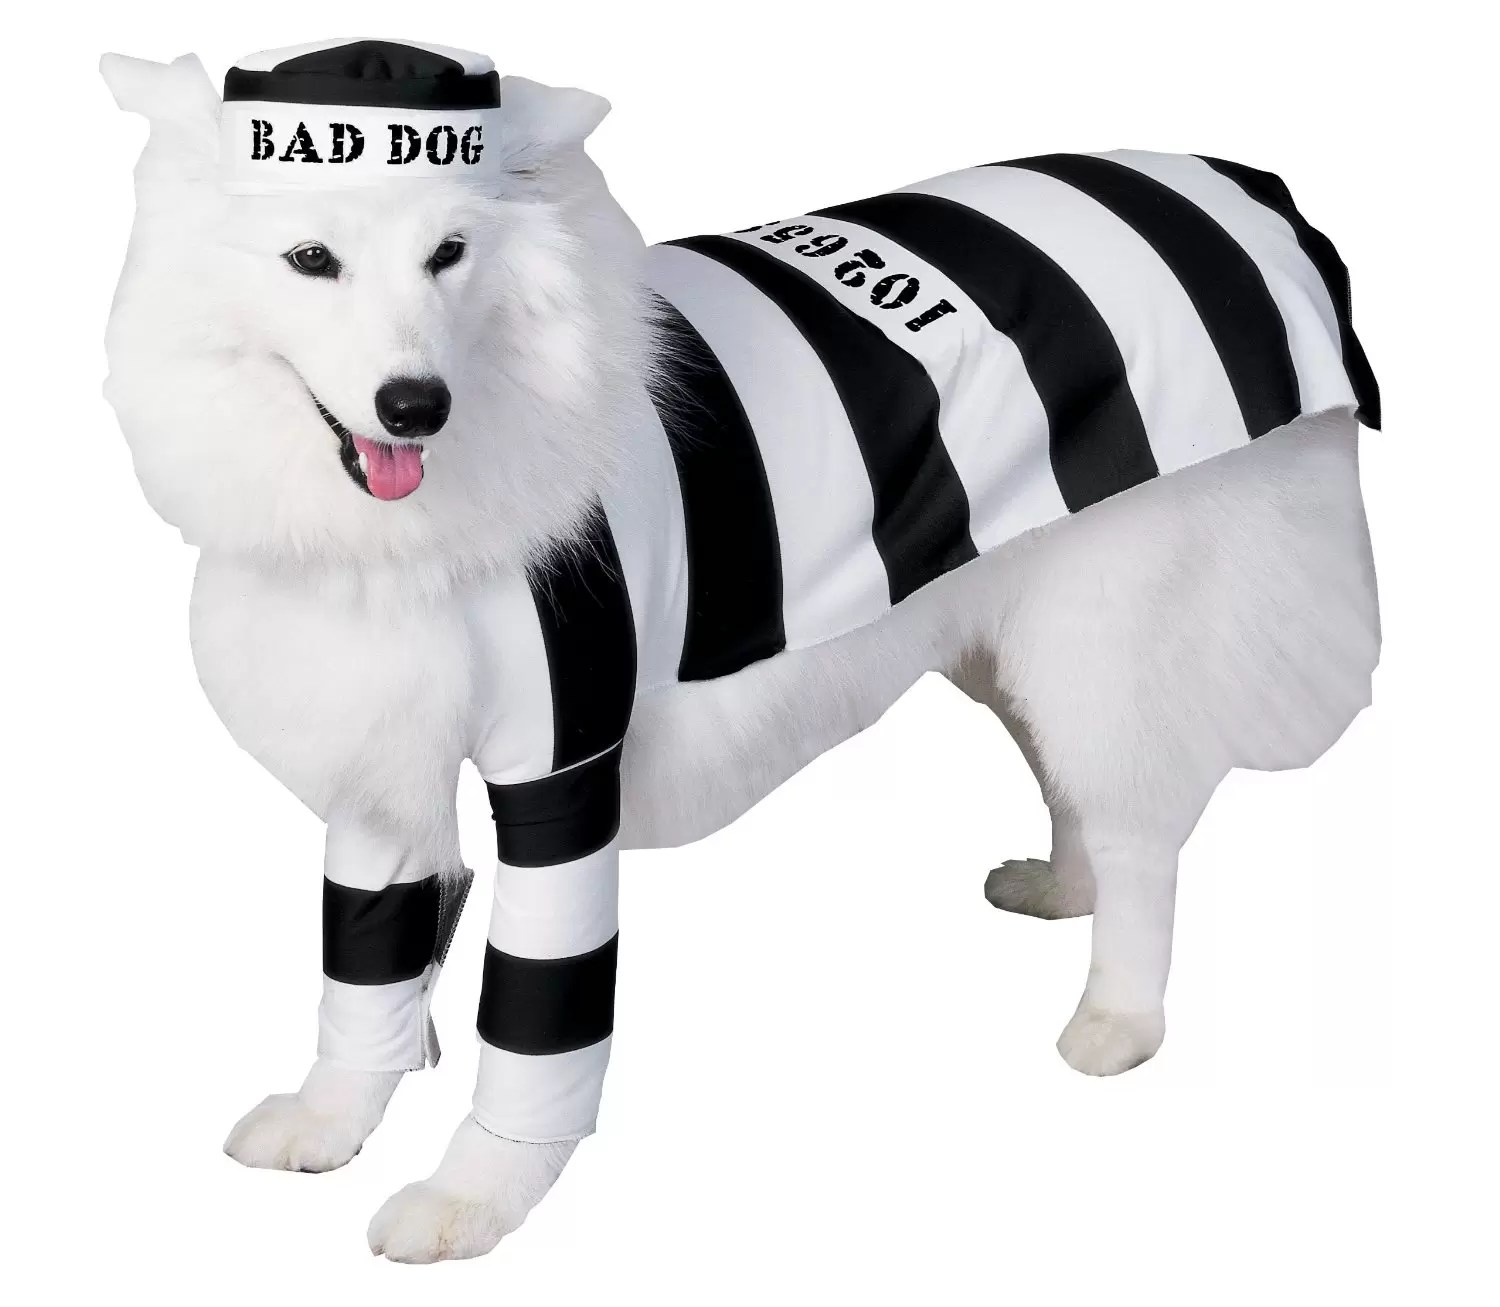 72 Most Adorable Dog Costumes for 2017